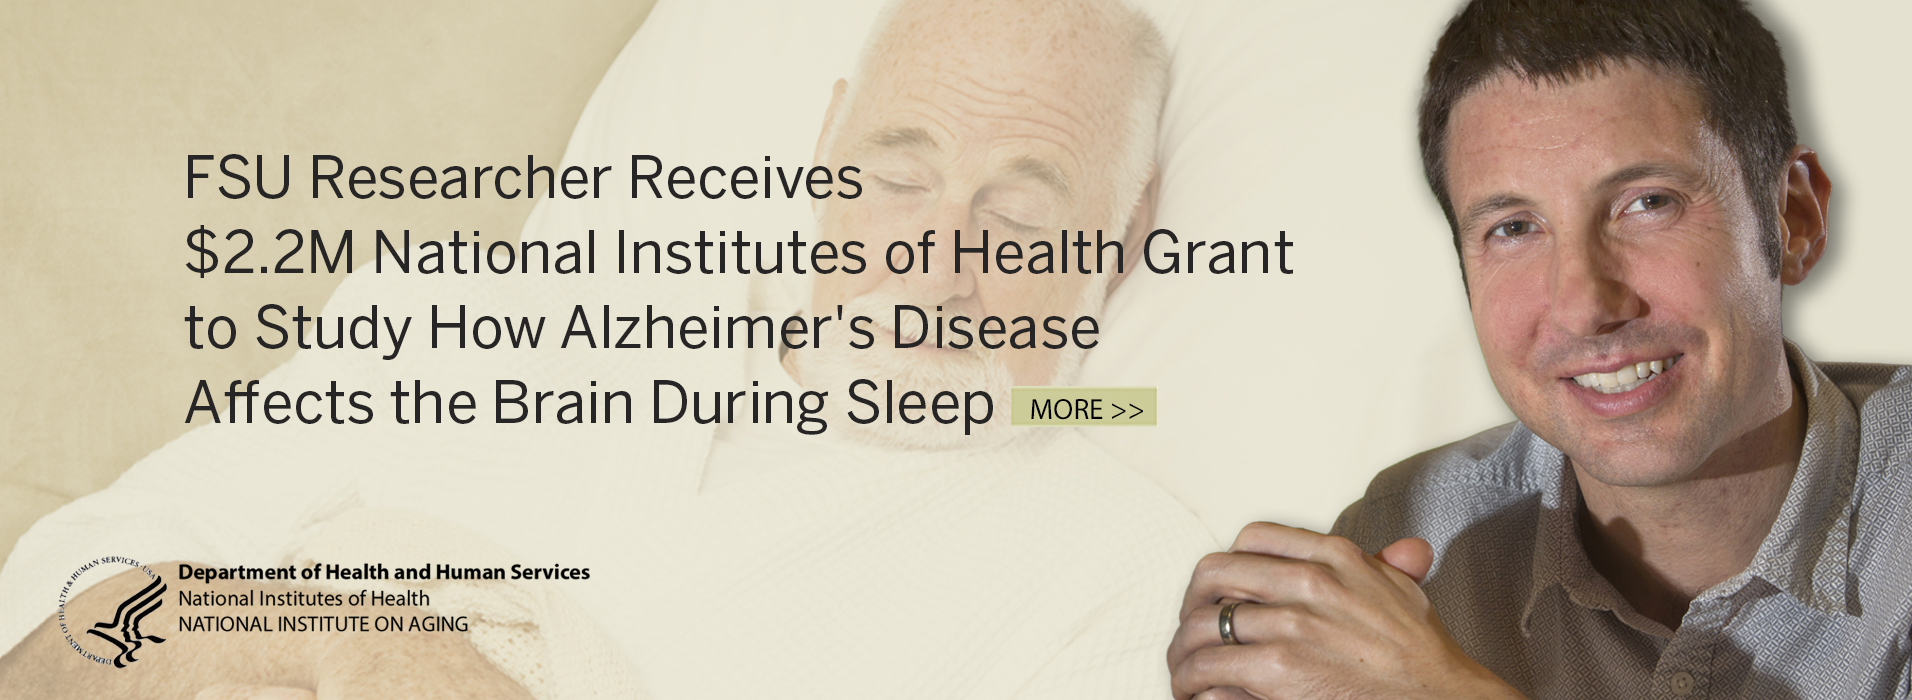 FSU Researcher Receives $2.2M National Institutes of Health Grant to Study How Alzheimer's Disease Affects the Brain During Sleep